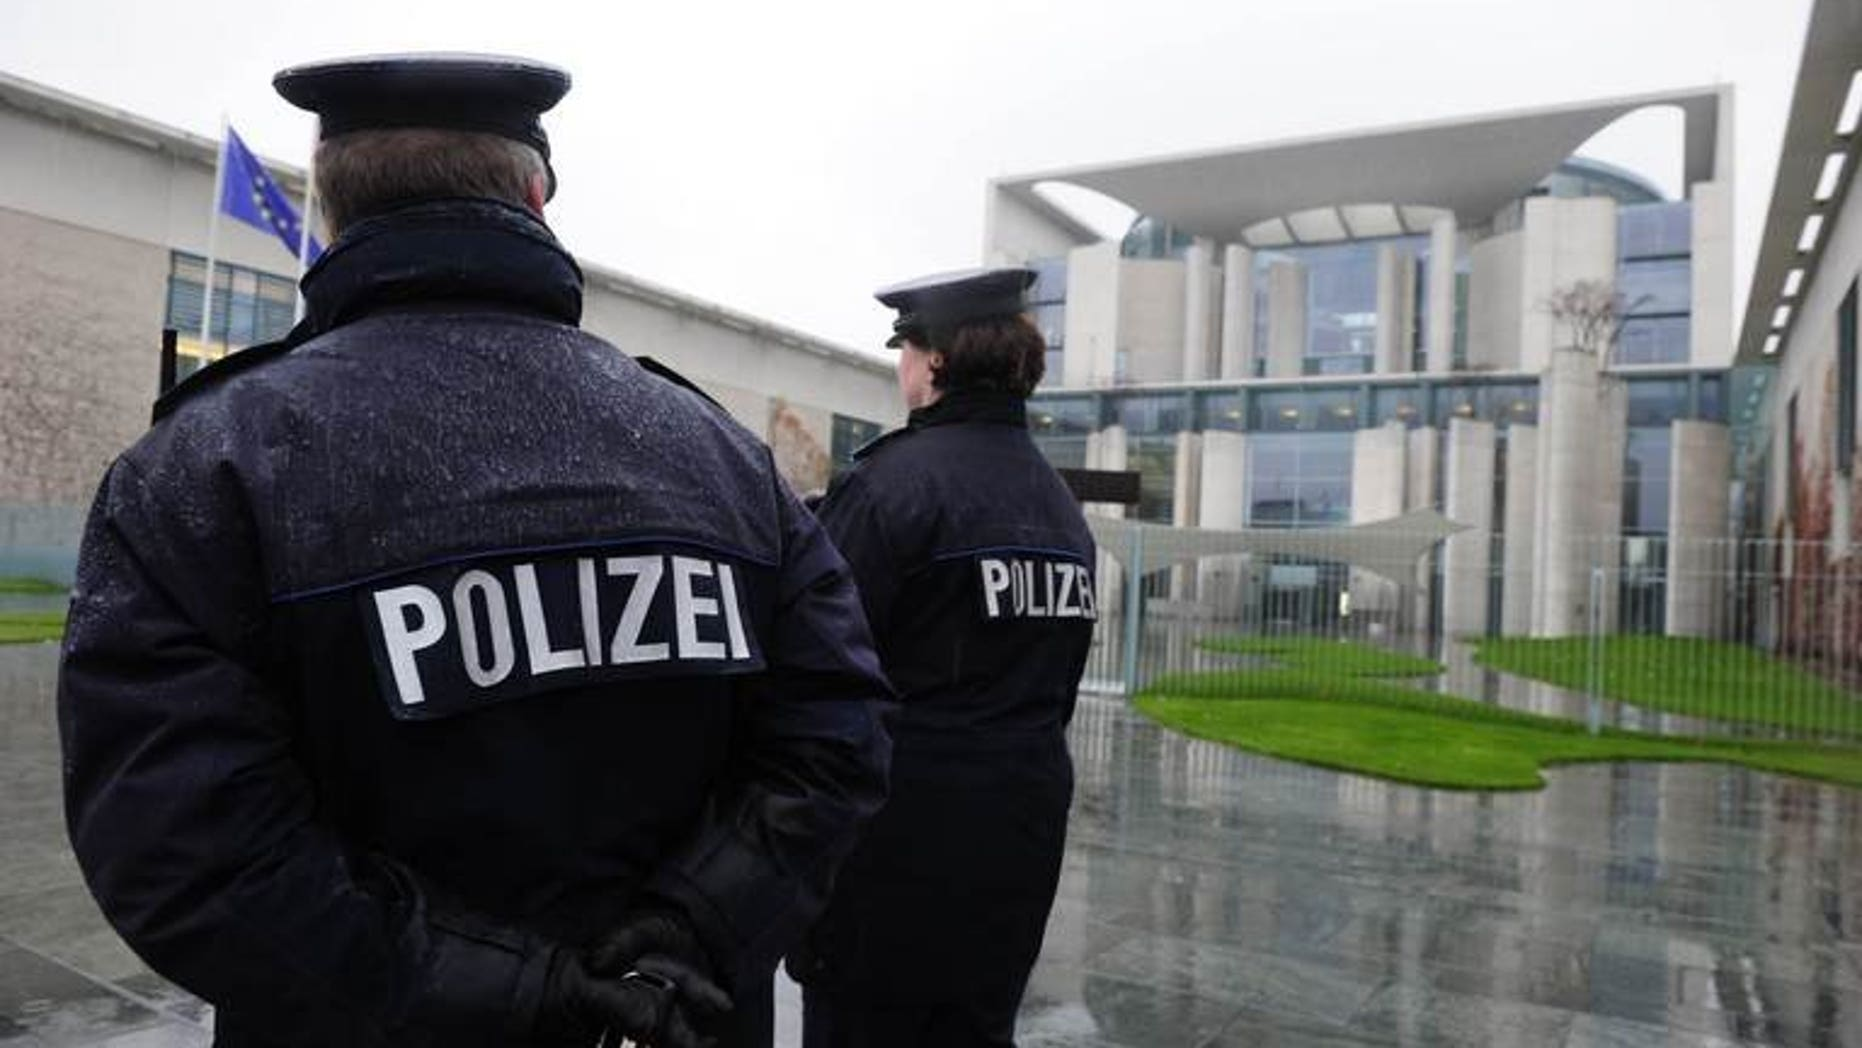 German police officers patrol in front of the Chancellery in Berlin on November 18, 2010. German police have arrested a man over an alleged far-right plot to use explosives mounted on a model airplane against political opponents, authorities said Tuesday.